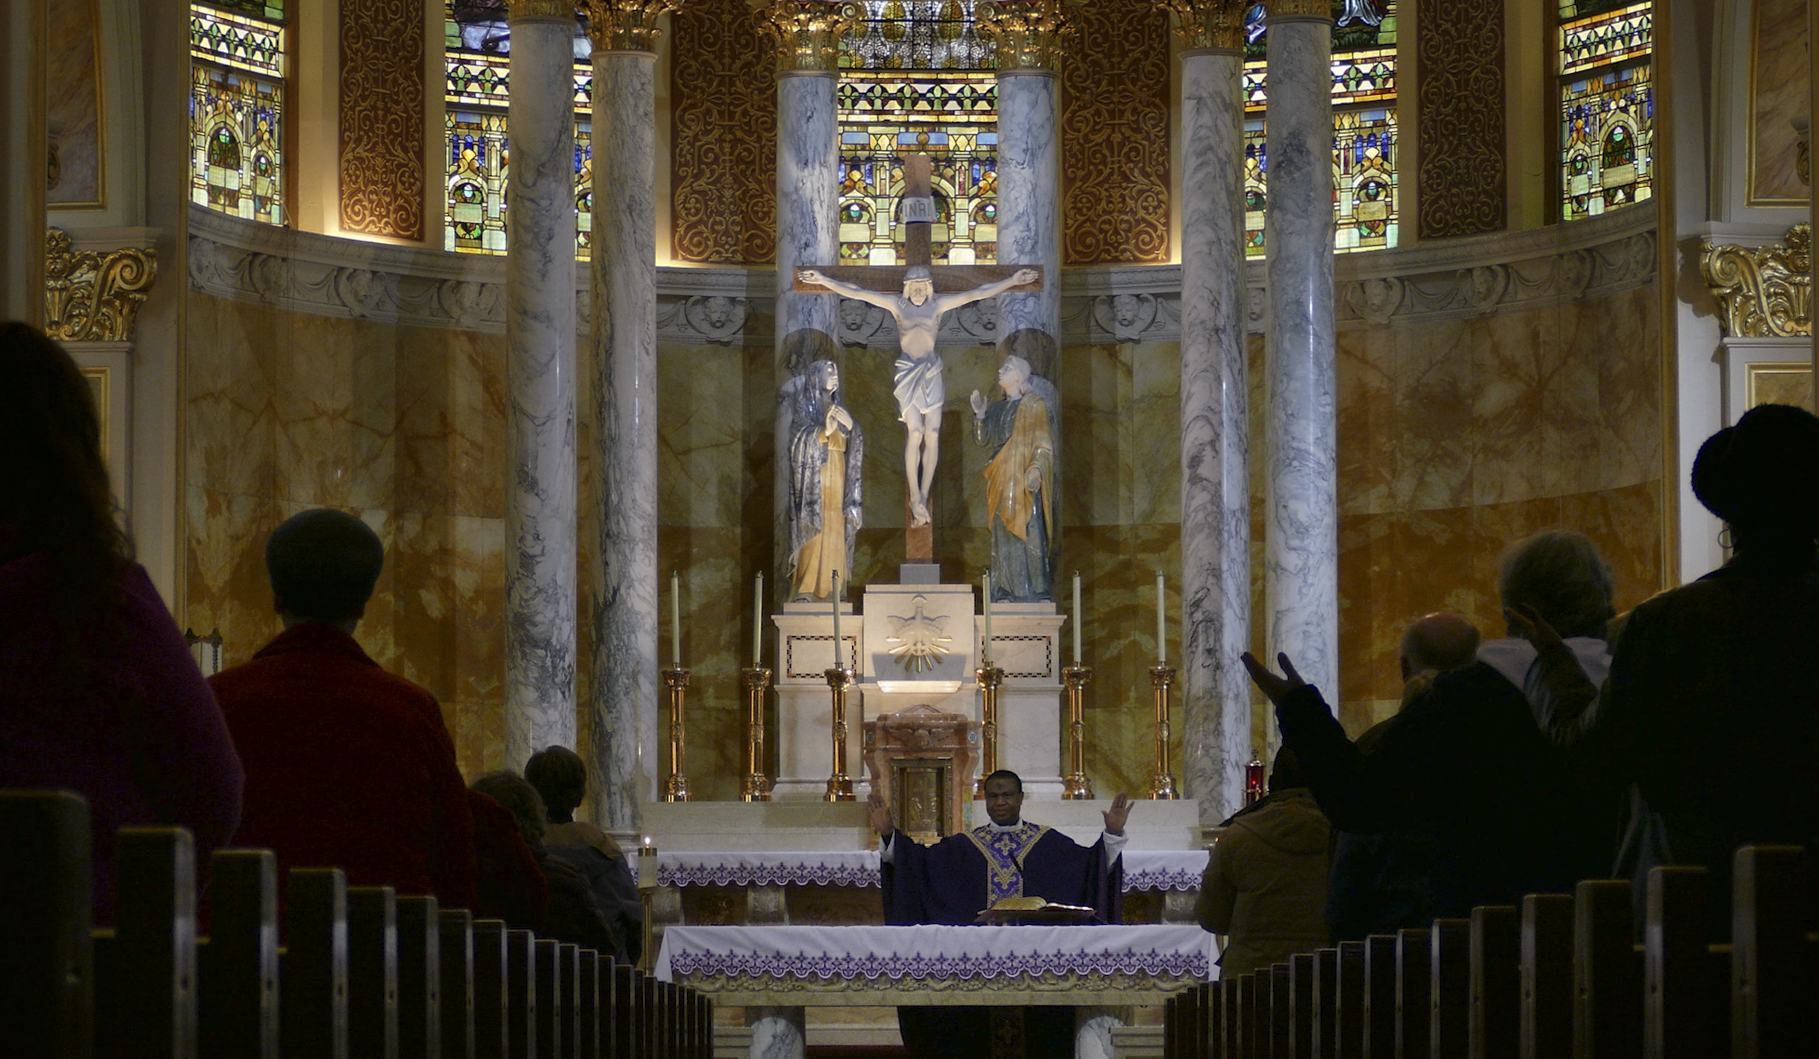 Many N J Churches Temples Reopening This Weekend With Indoor Services While Others Continue Outdoor Or Online Services Nj Com